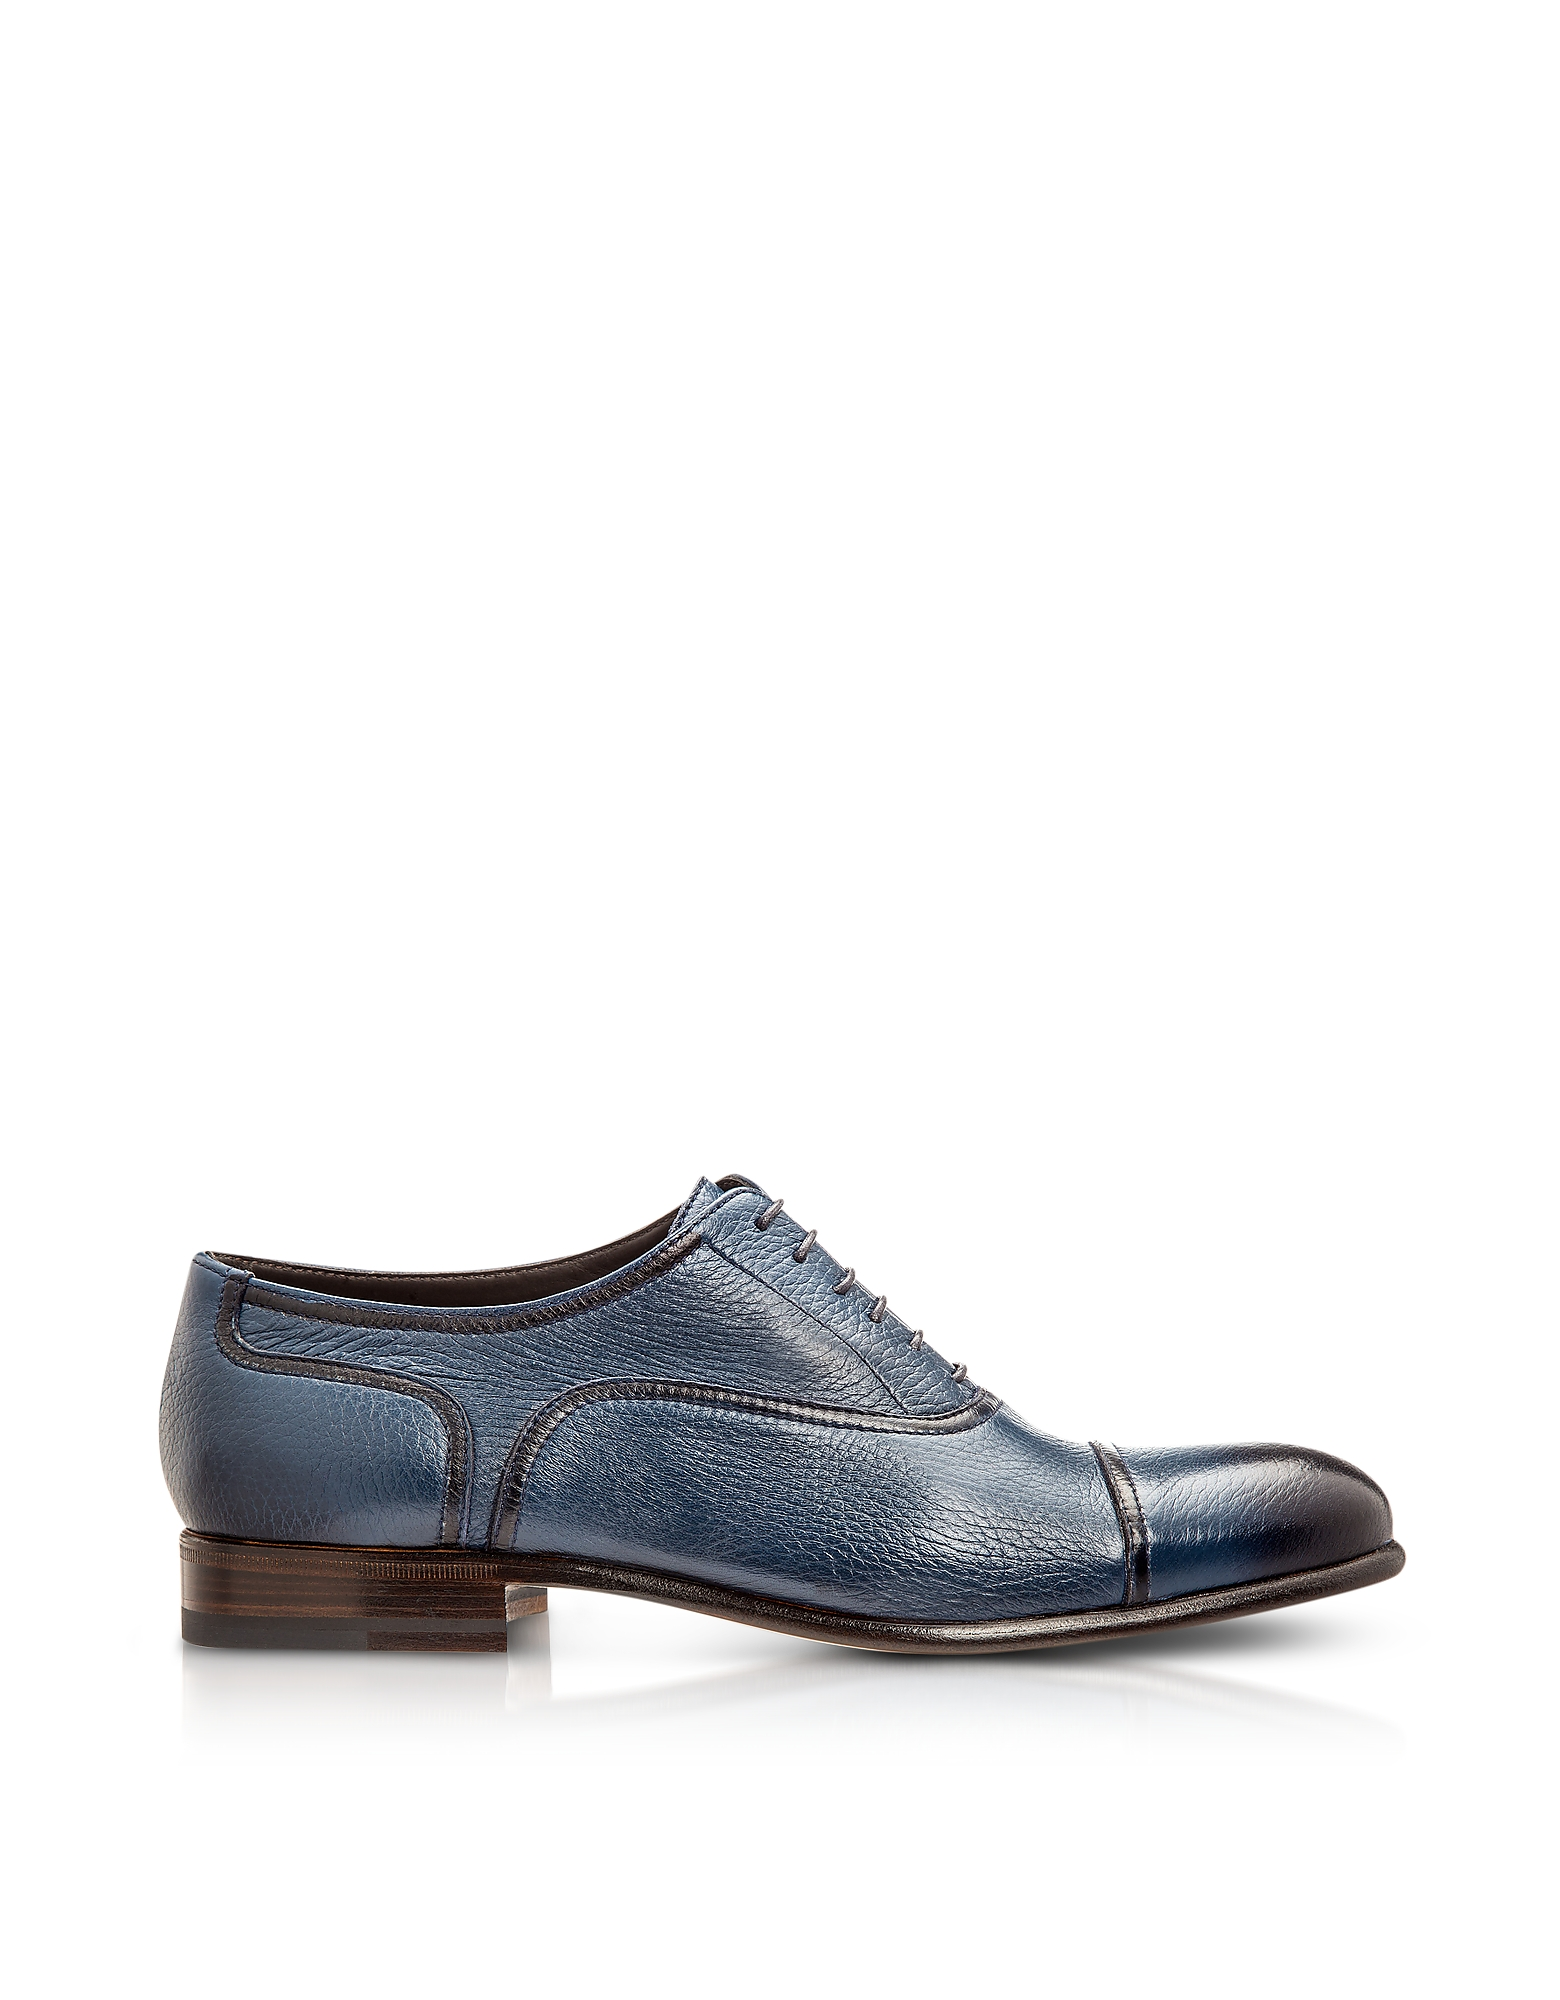 Moreschi Shoes, Nice Blue Deerskin Oxford Shoes